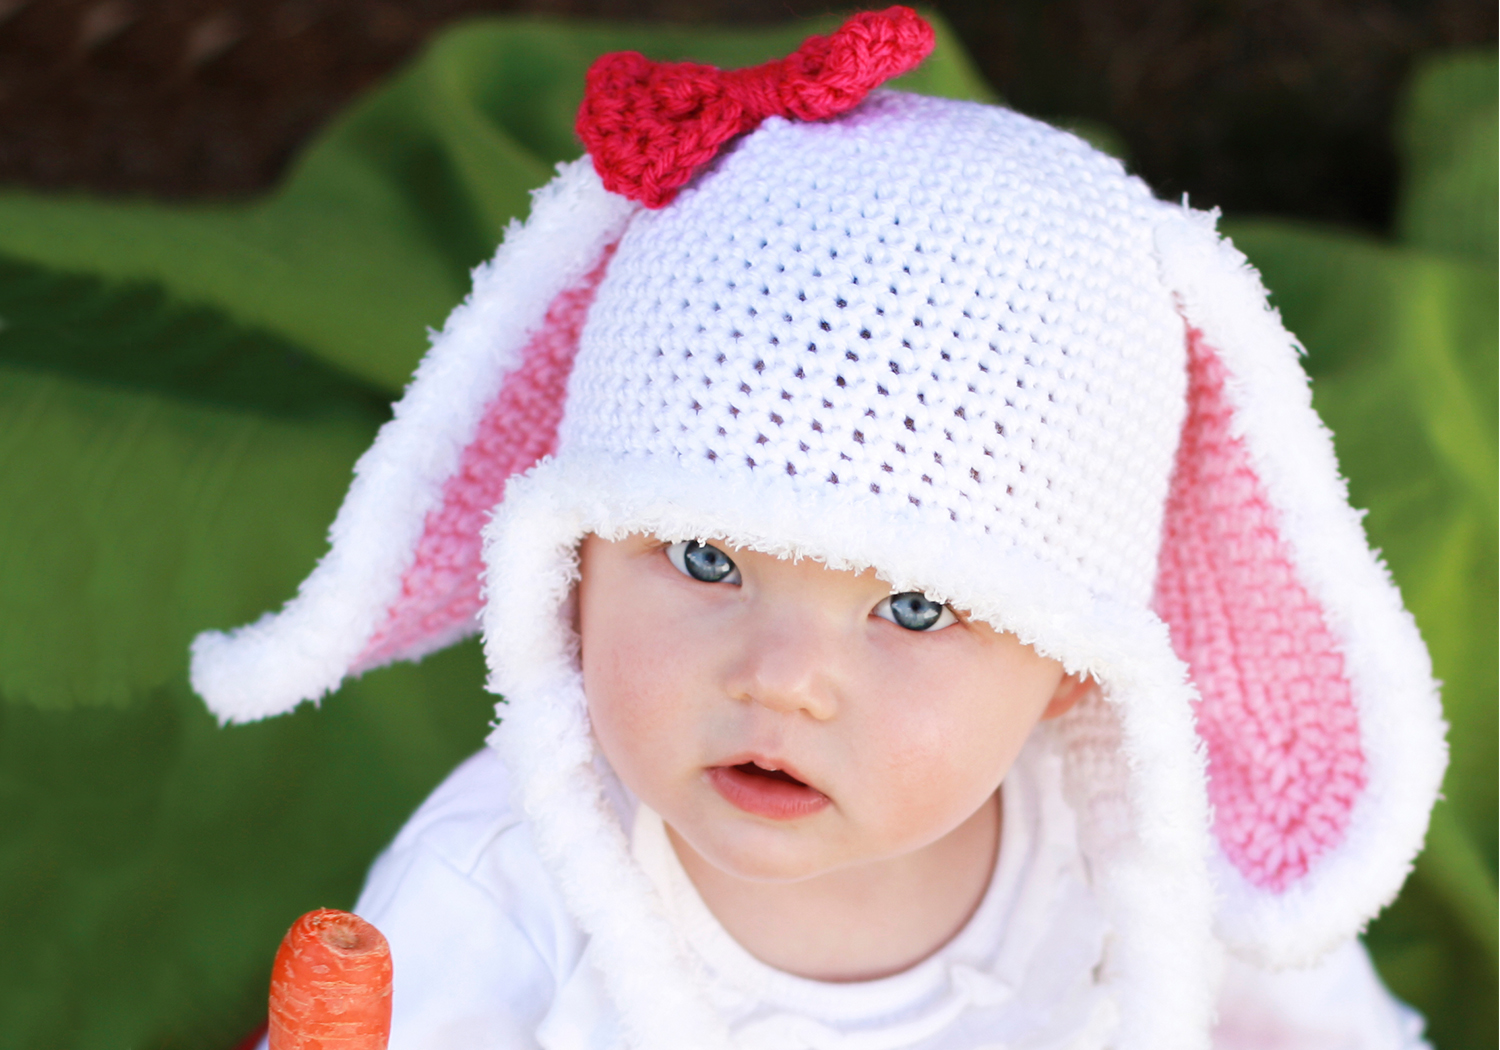 Cute furry bunny hat